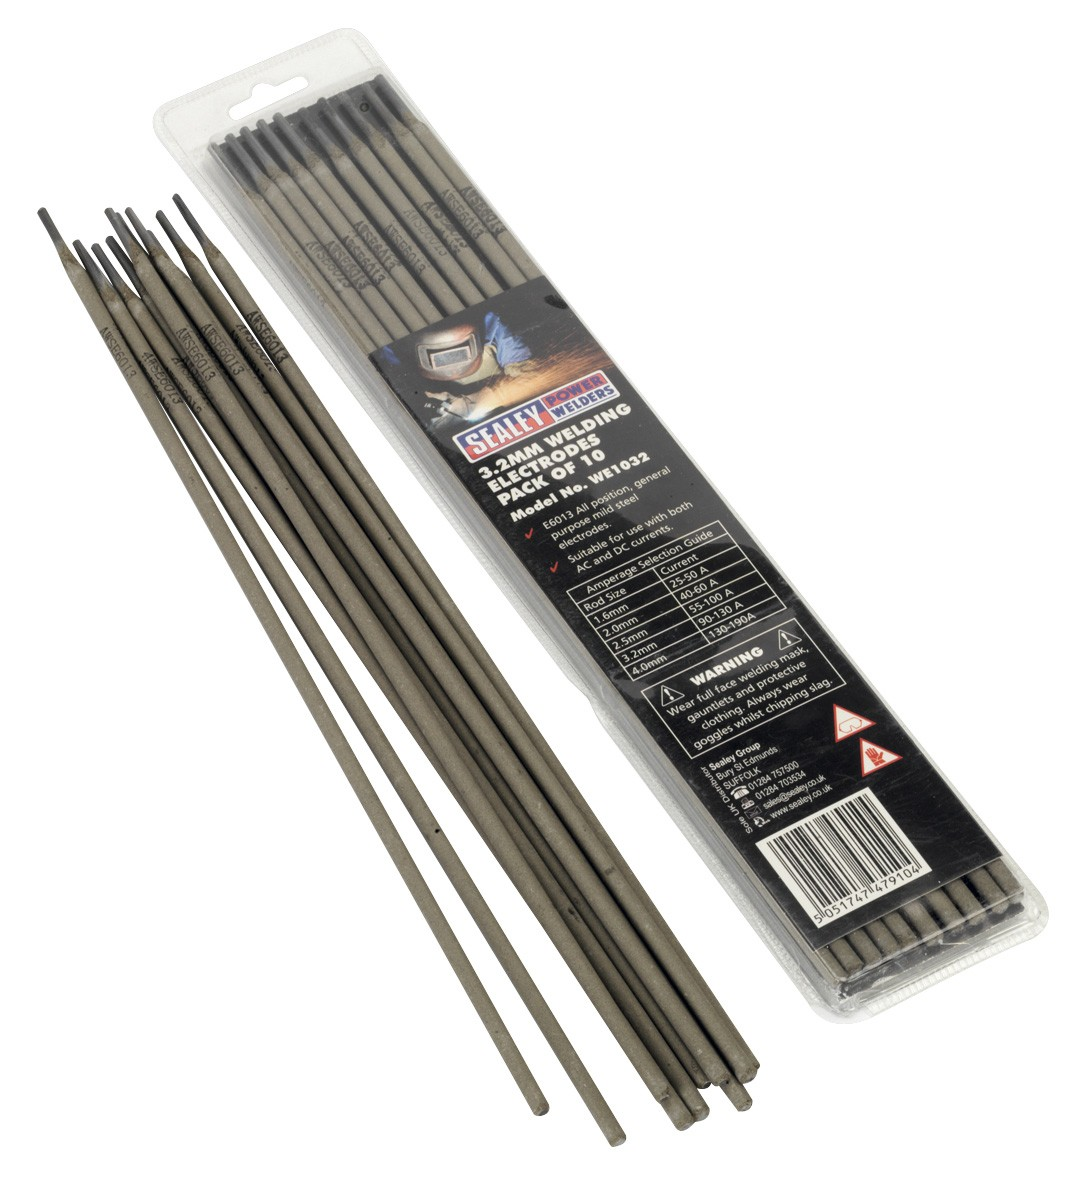 WELDING ELECTRODE DIA.3.2 X 300MM PACK OF 10 FROM SEALEY WE1032 SYSP